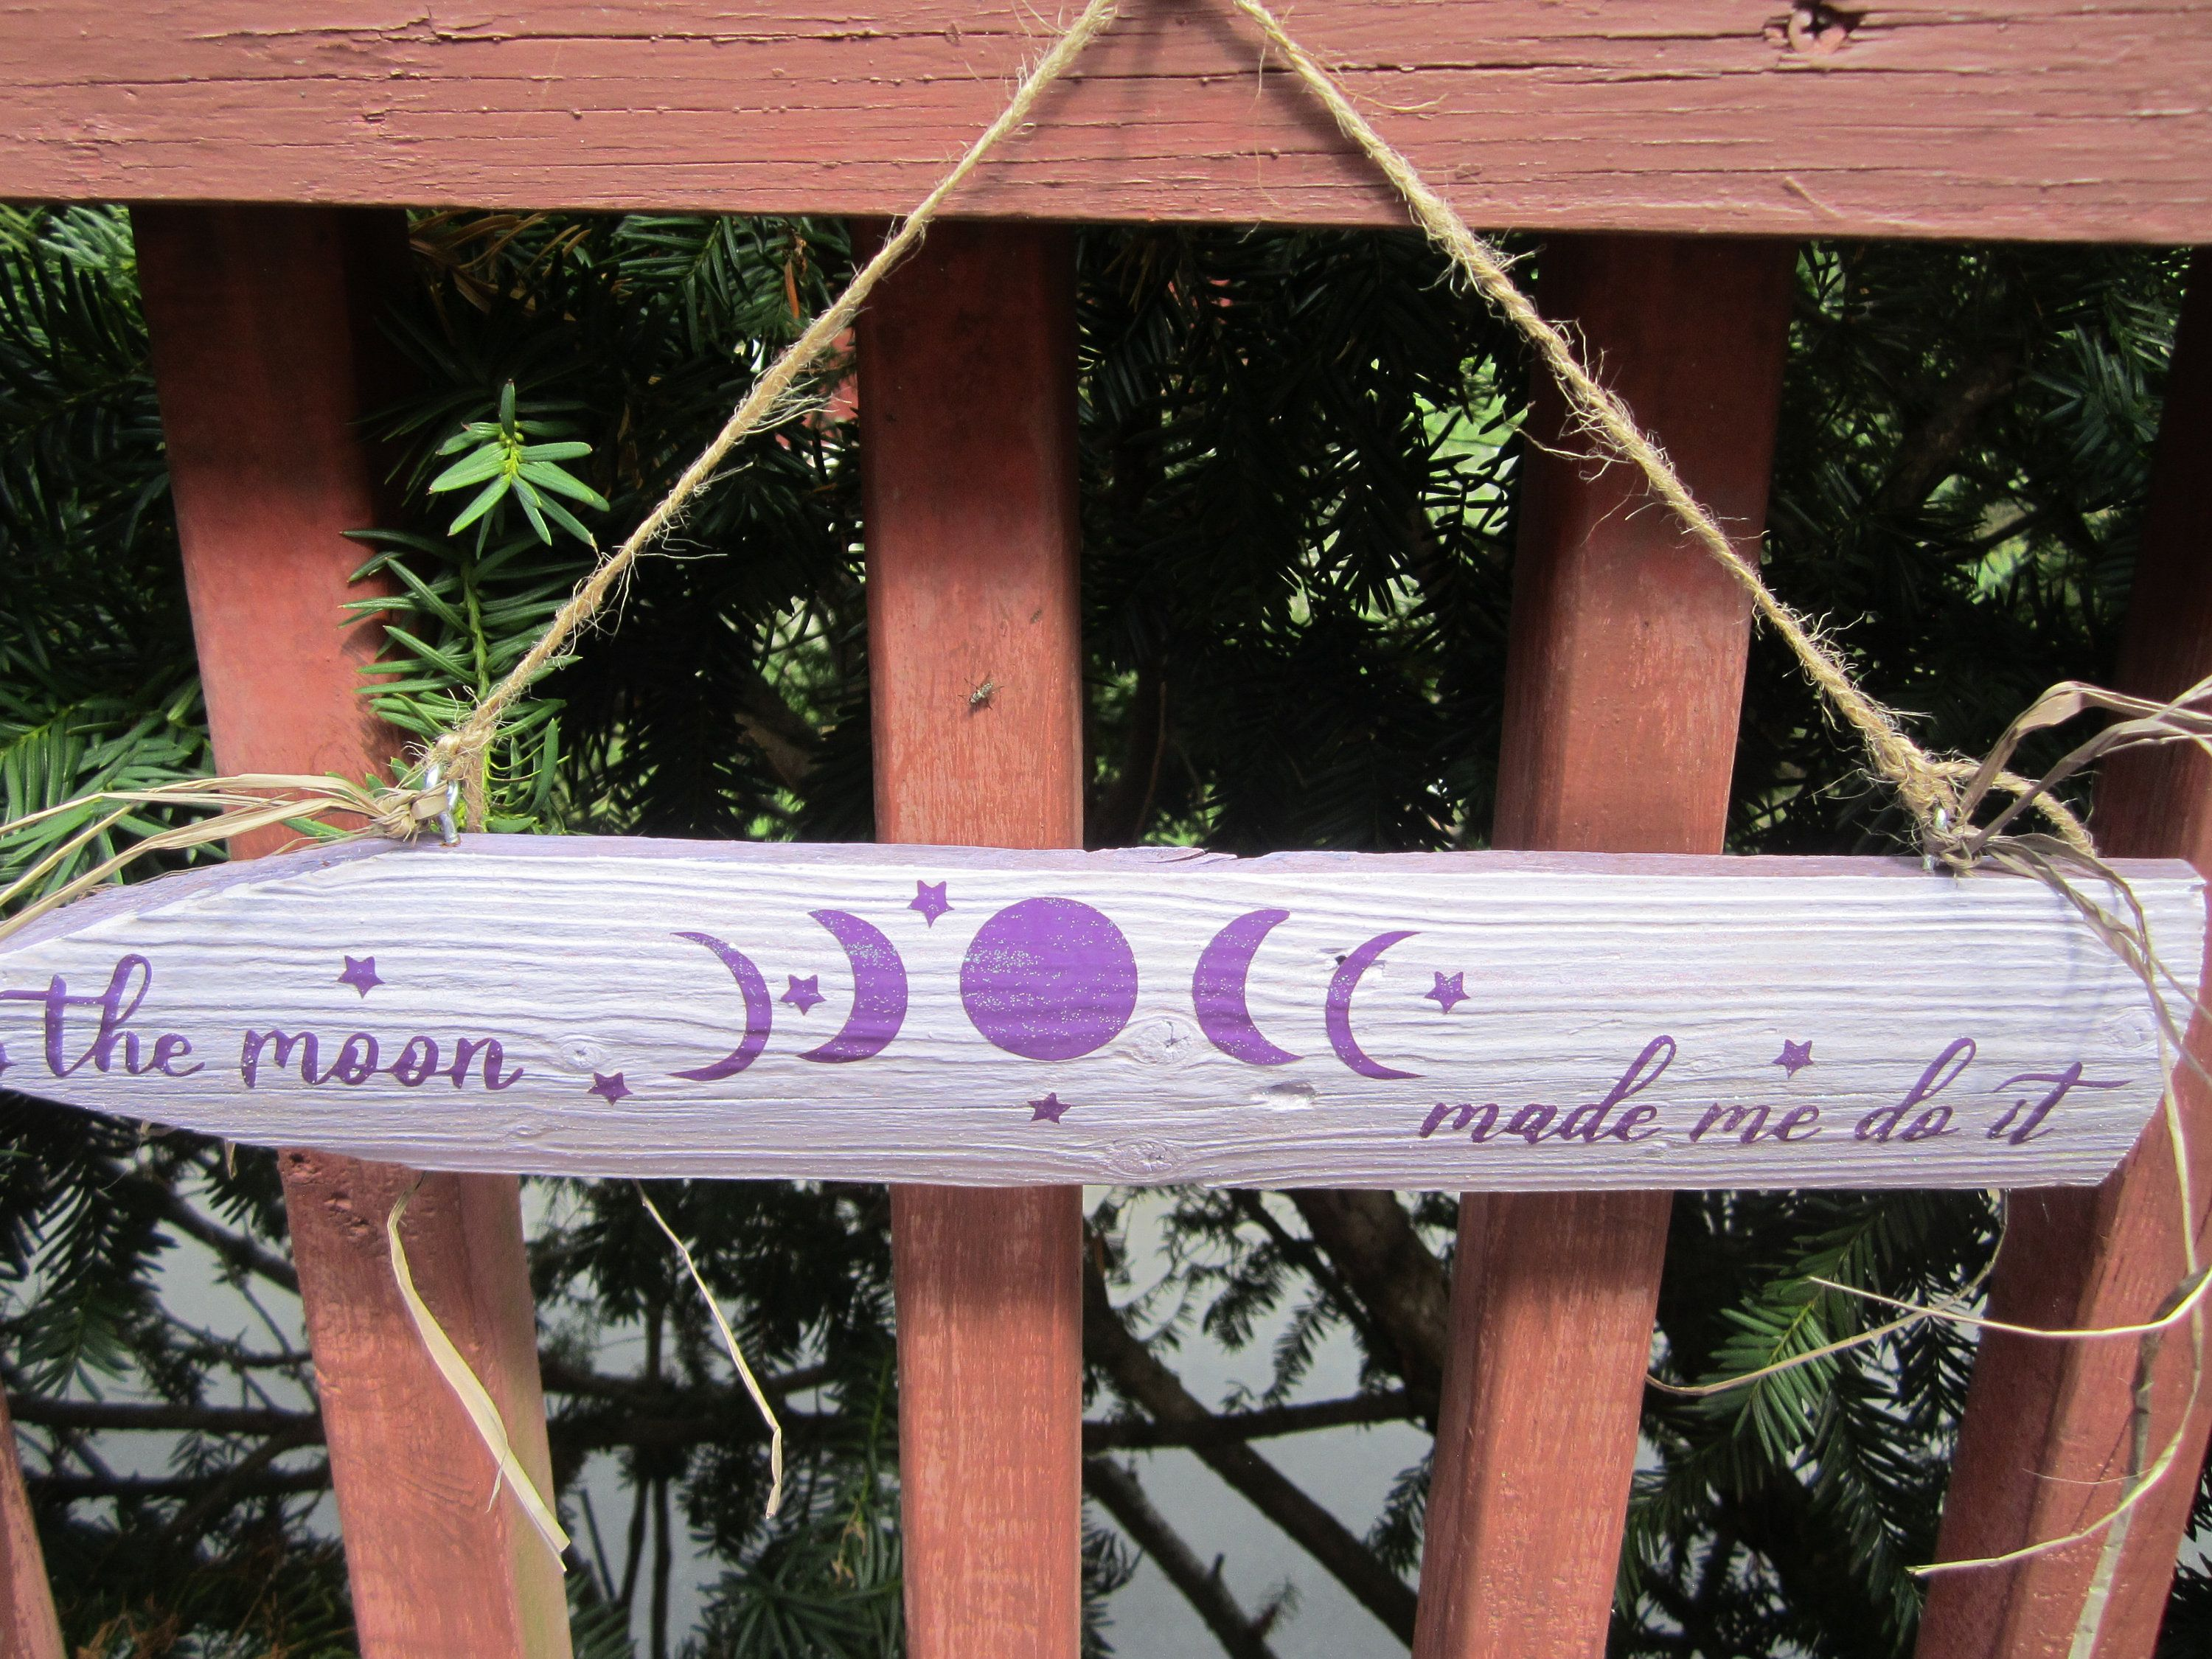 Wooden Moon Hanging Sign, Wiccan Decor, The Moon Made Me Do It Sign, Purple Moon Sign for Altar, Wiccan Sign, Altar Decor, Home Decor Sign #wiccandecor